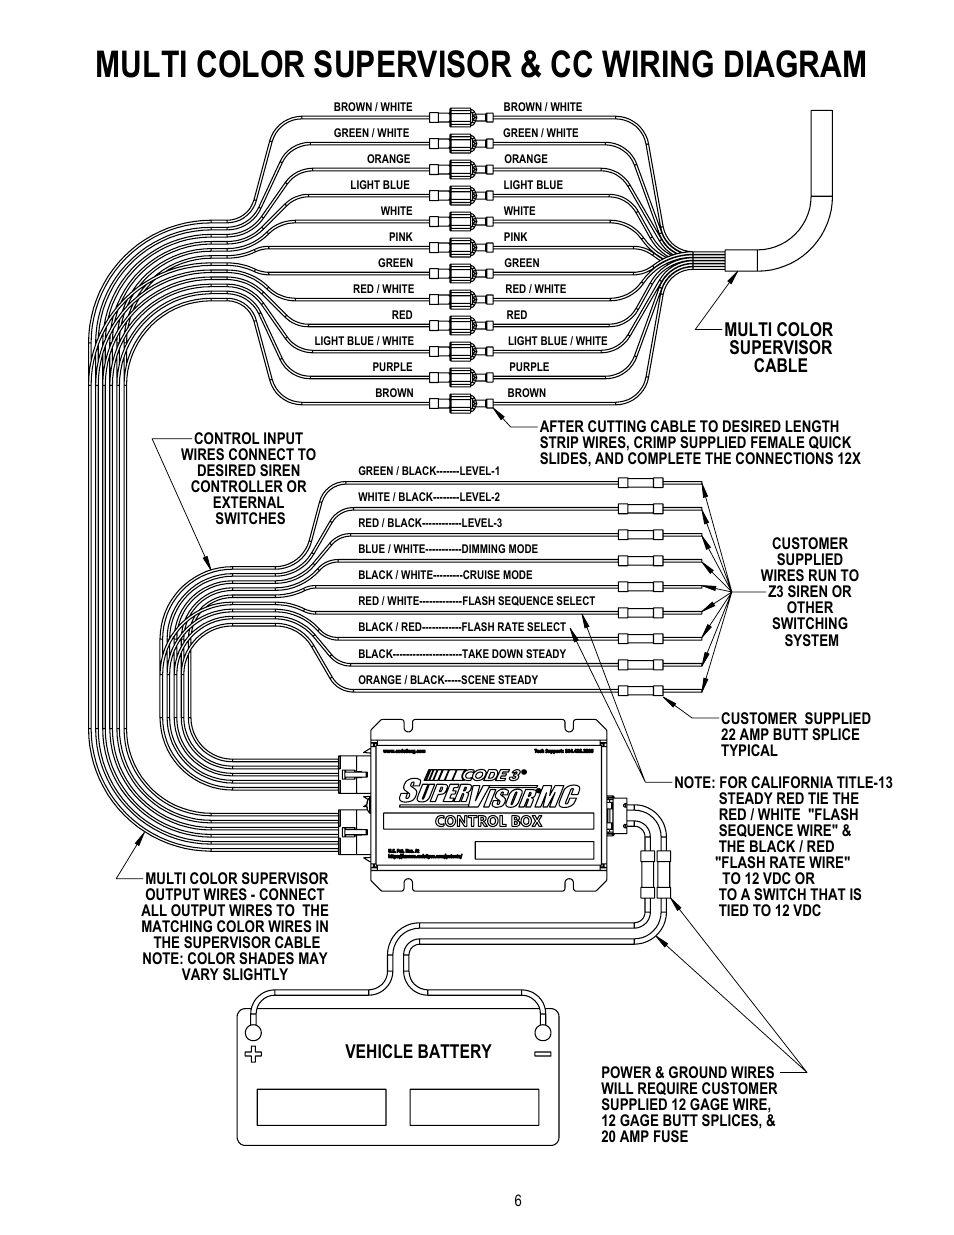 code 3 mc supervisor tahoe page6?resize\\=665%2C861 gq patrol ignition wiring diagram wiring diagram gq patrol ignition wiring diagram at gsmx.co